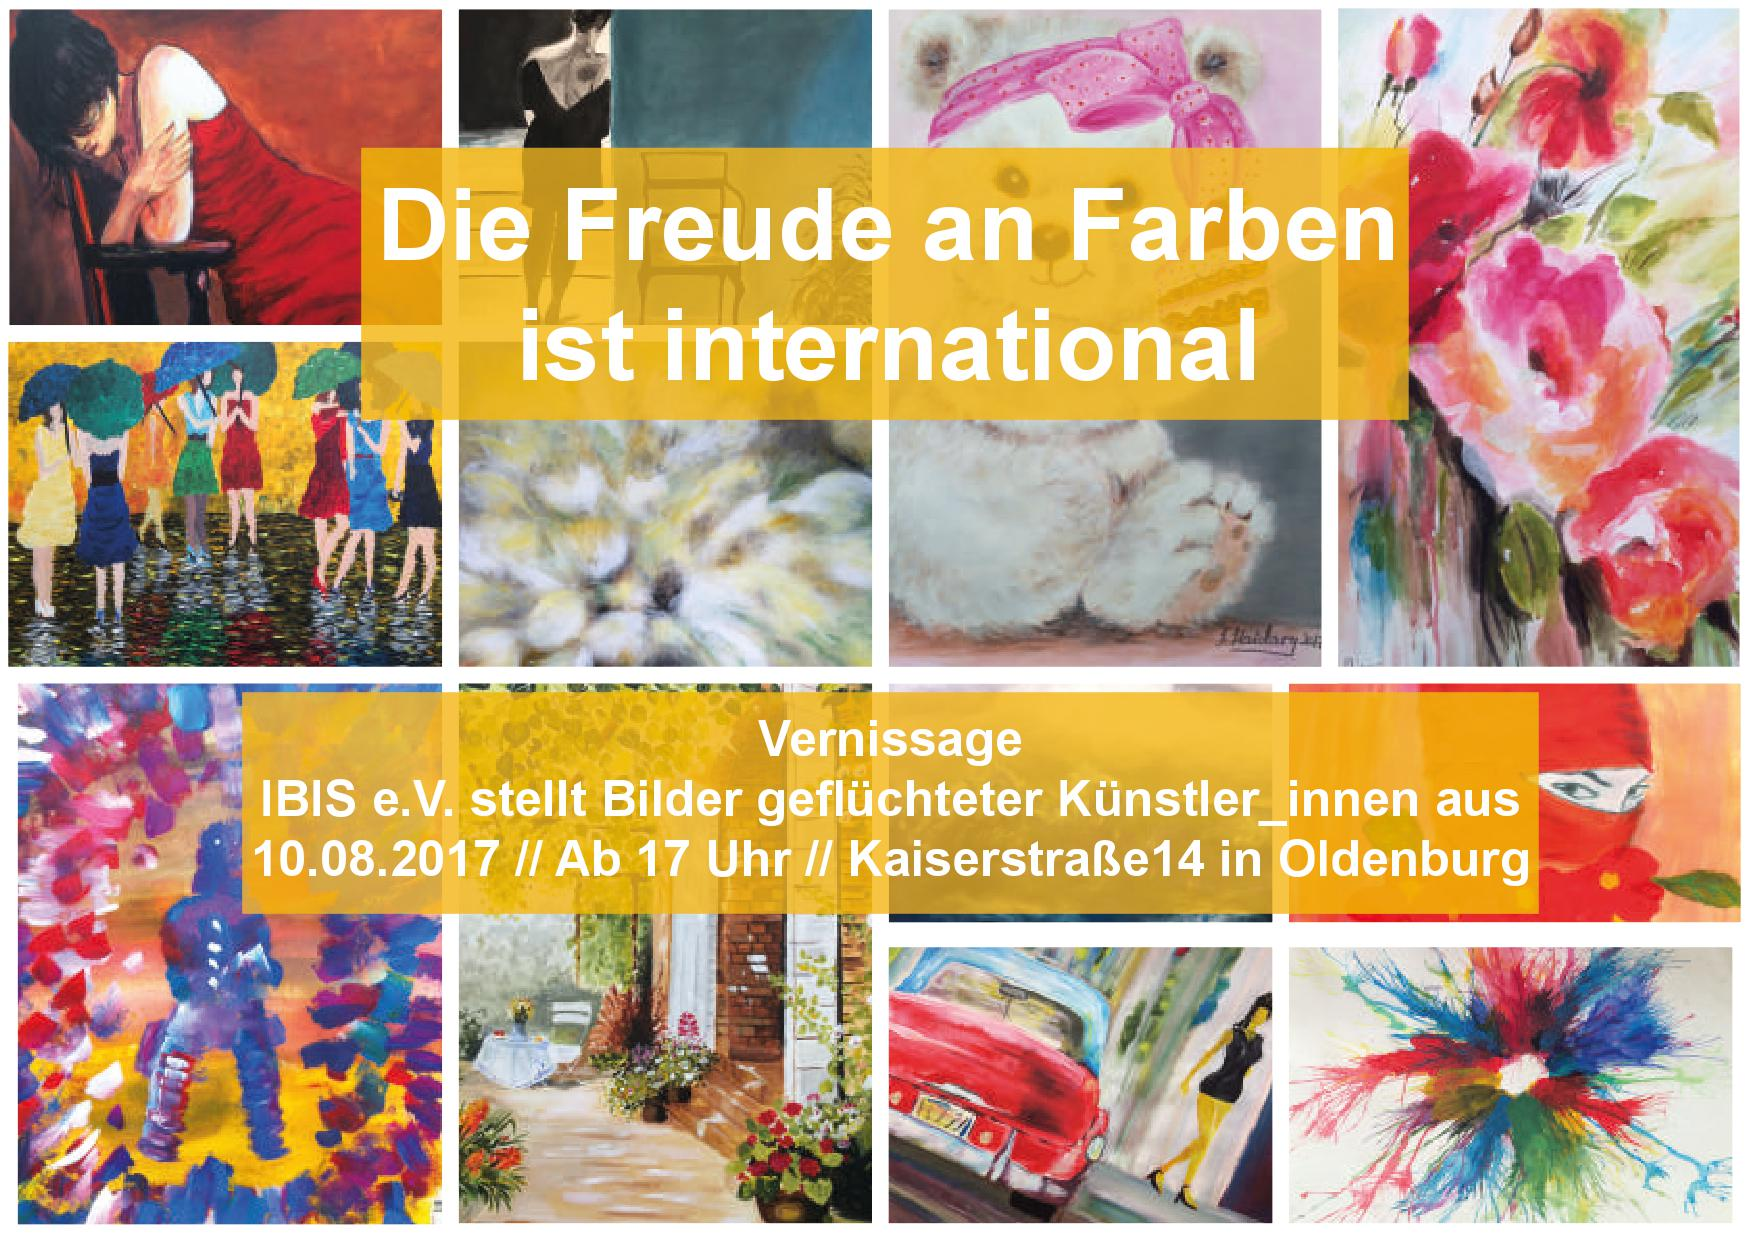 Vernissage Bei IBIS E.V.